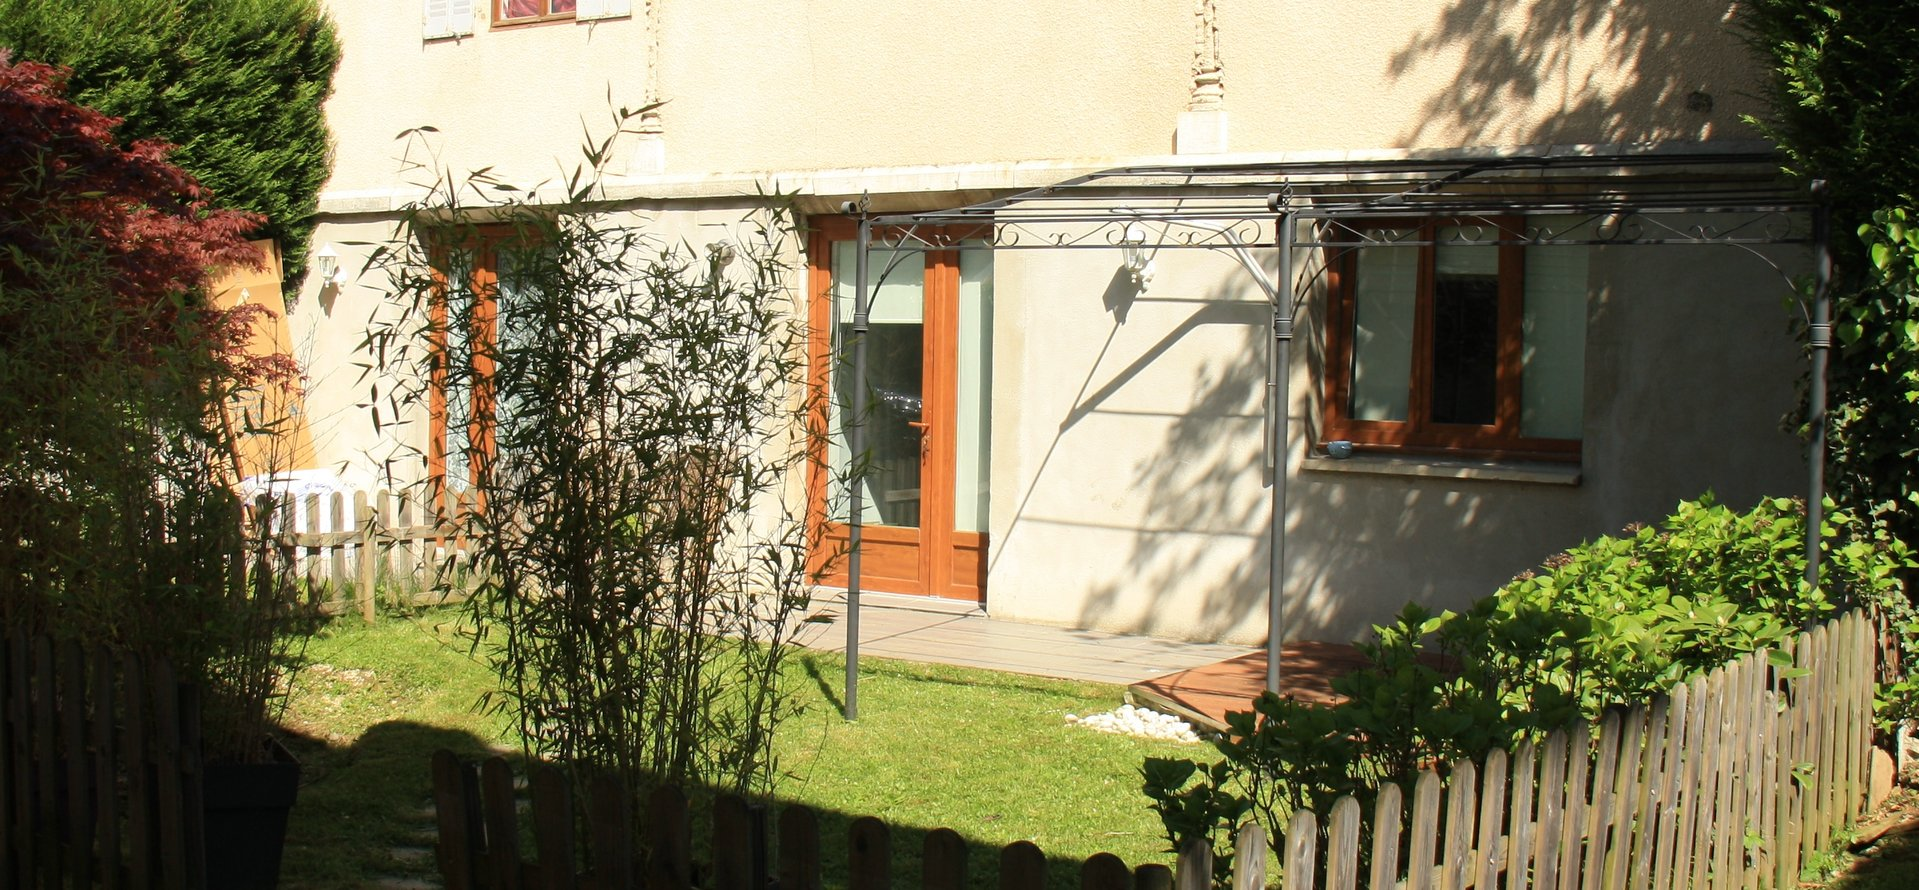 CHARMING 2 ROOMS OF ABOUT 50 M ² NEAR THE PARK OF VERDURE